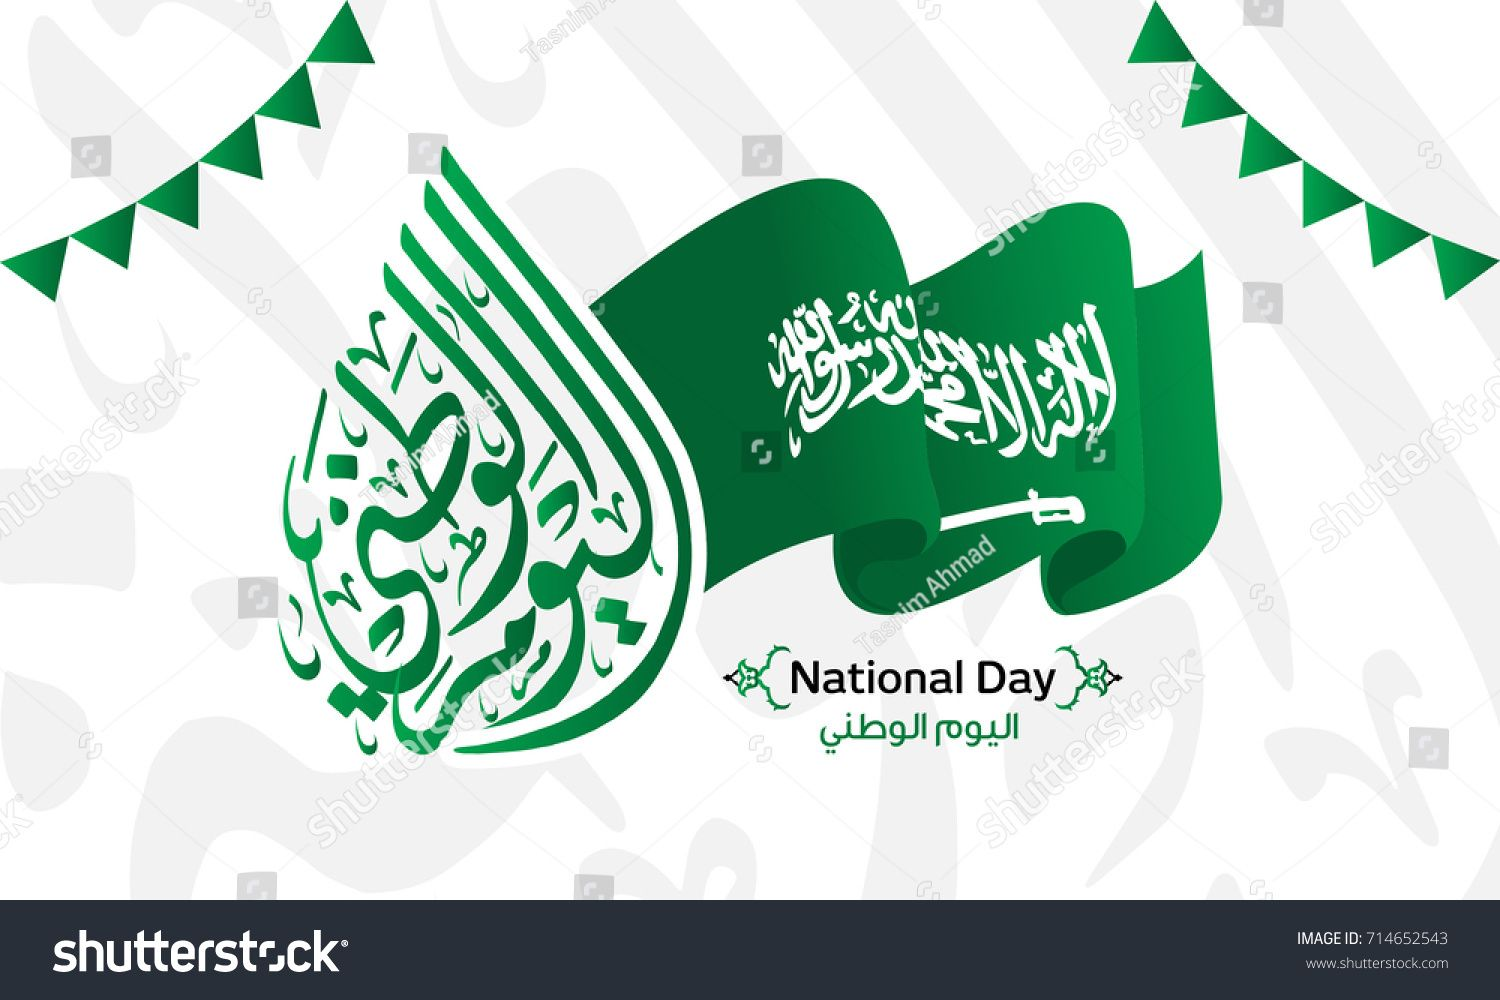 Vector Of National Day In Arabic Calligraphy Style With Saudi Arabia Flag 1 Day Arabic Vector National Saudi Arabia Flag National Day Saudi National Day